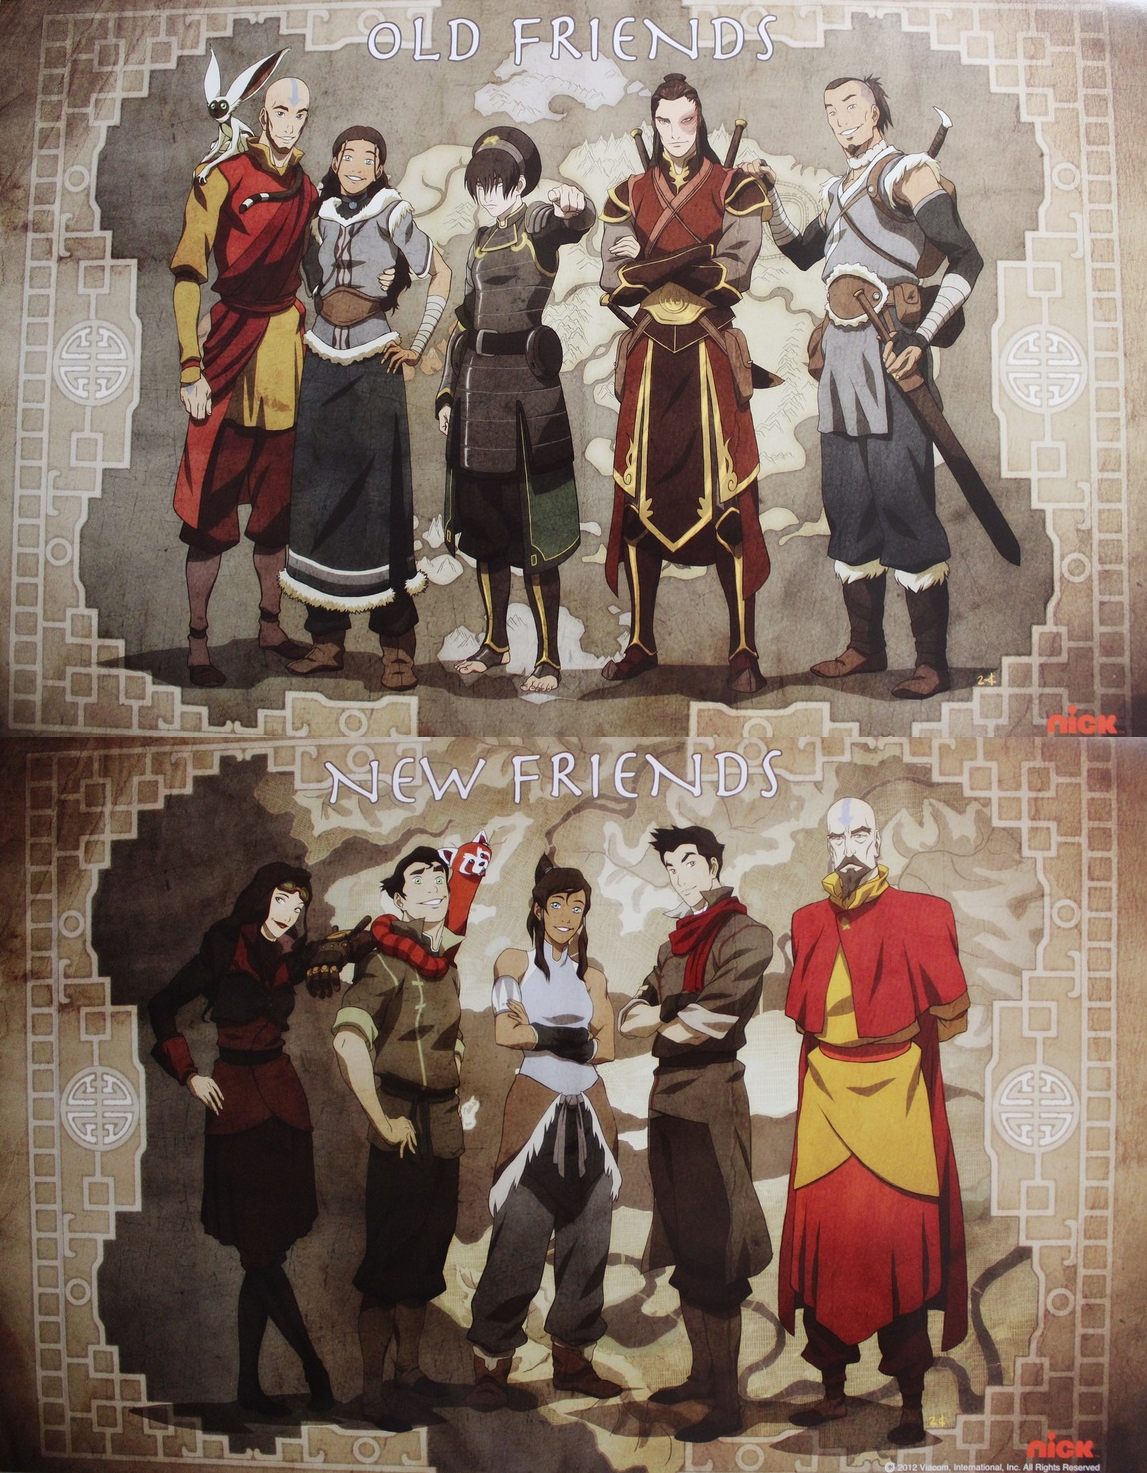 Team Avatar. I'd totally watch a tv show of the original team avatar as adults.